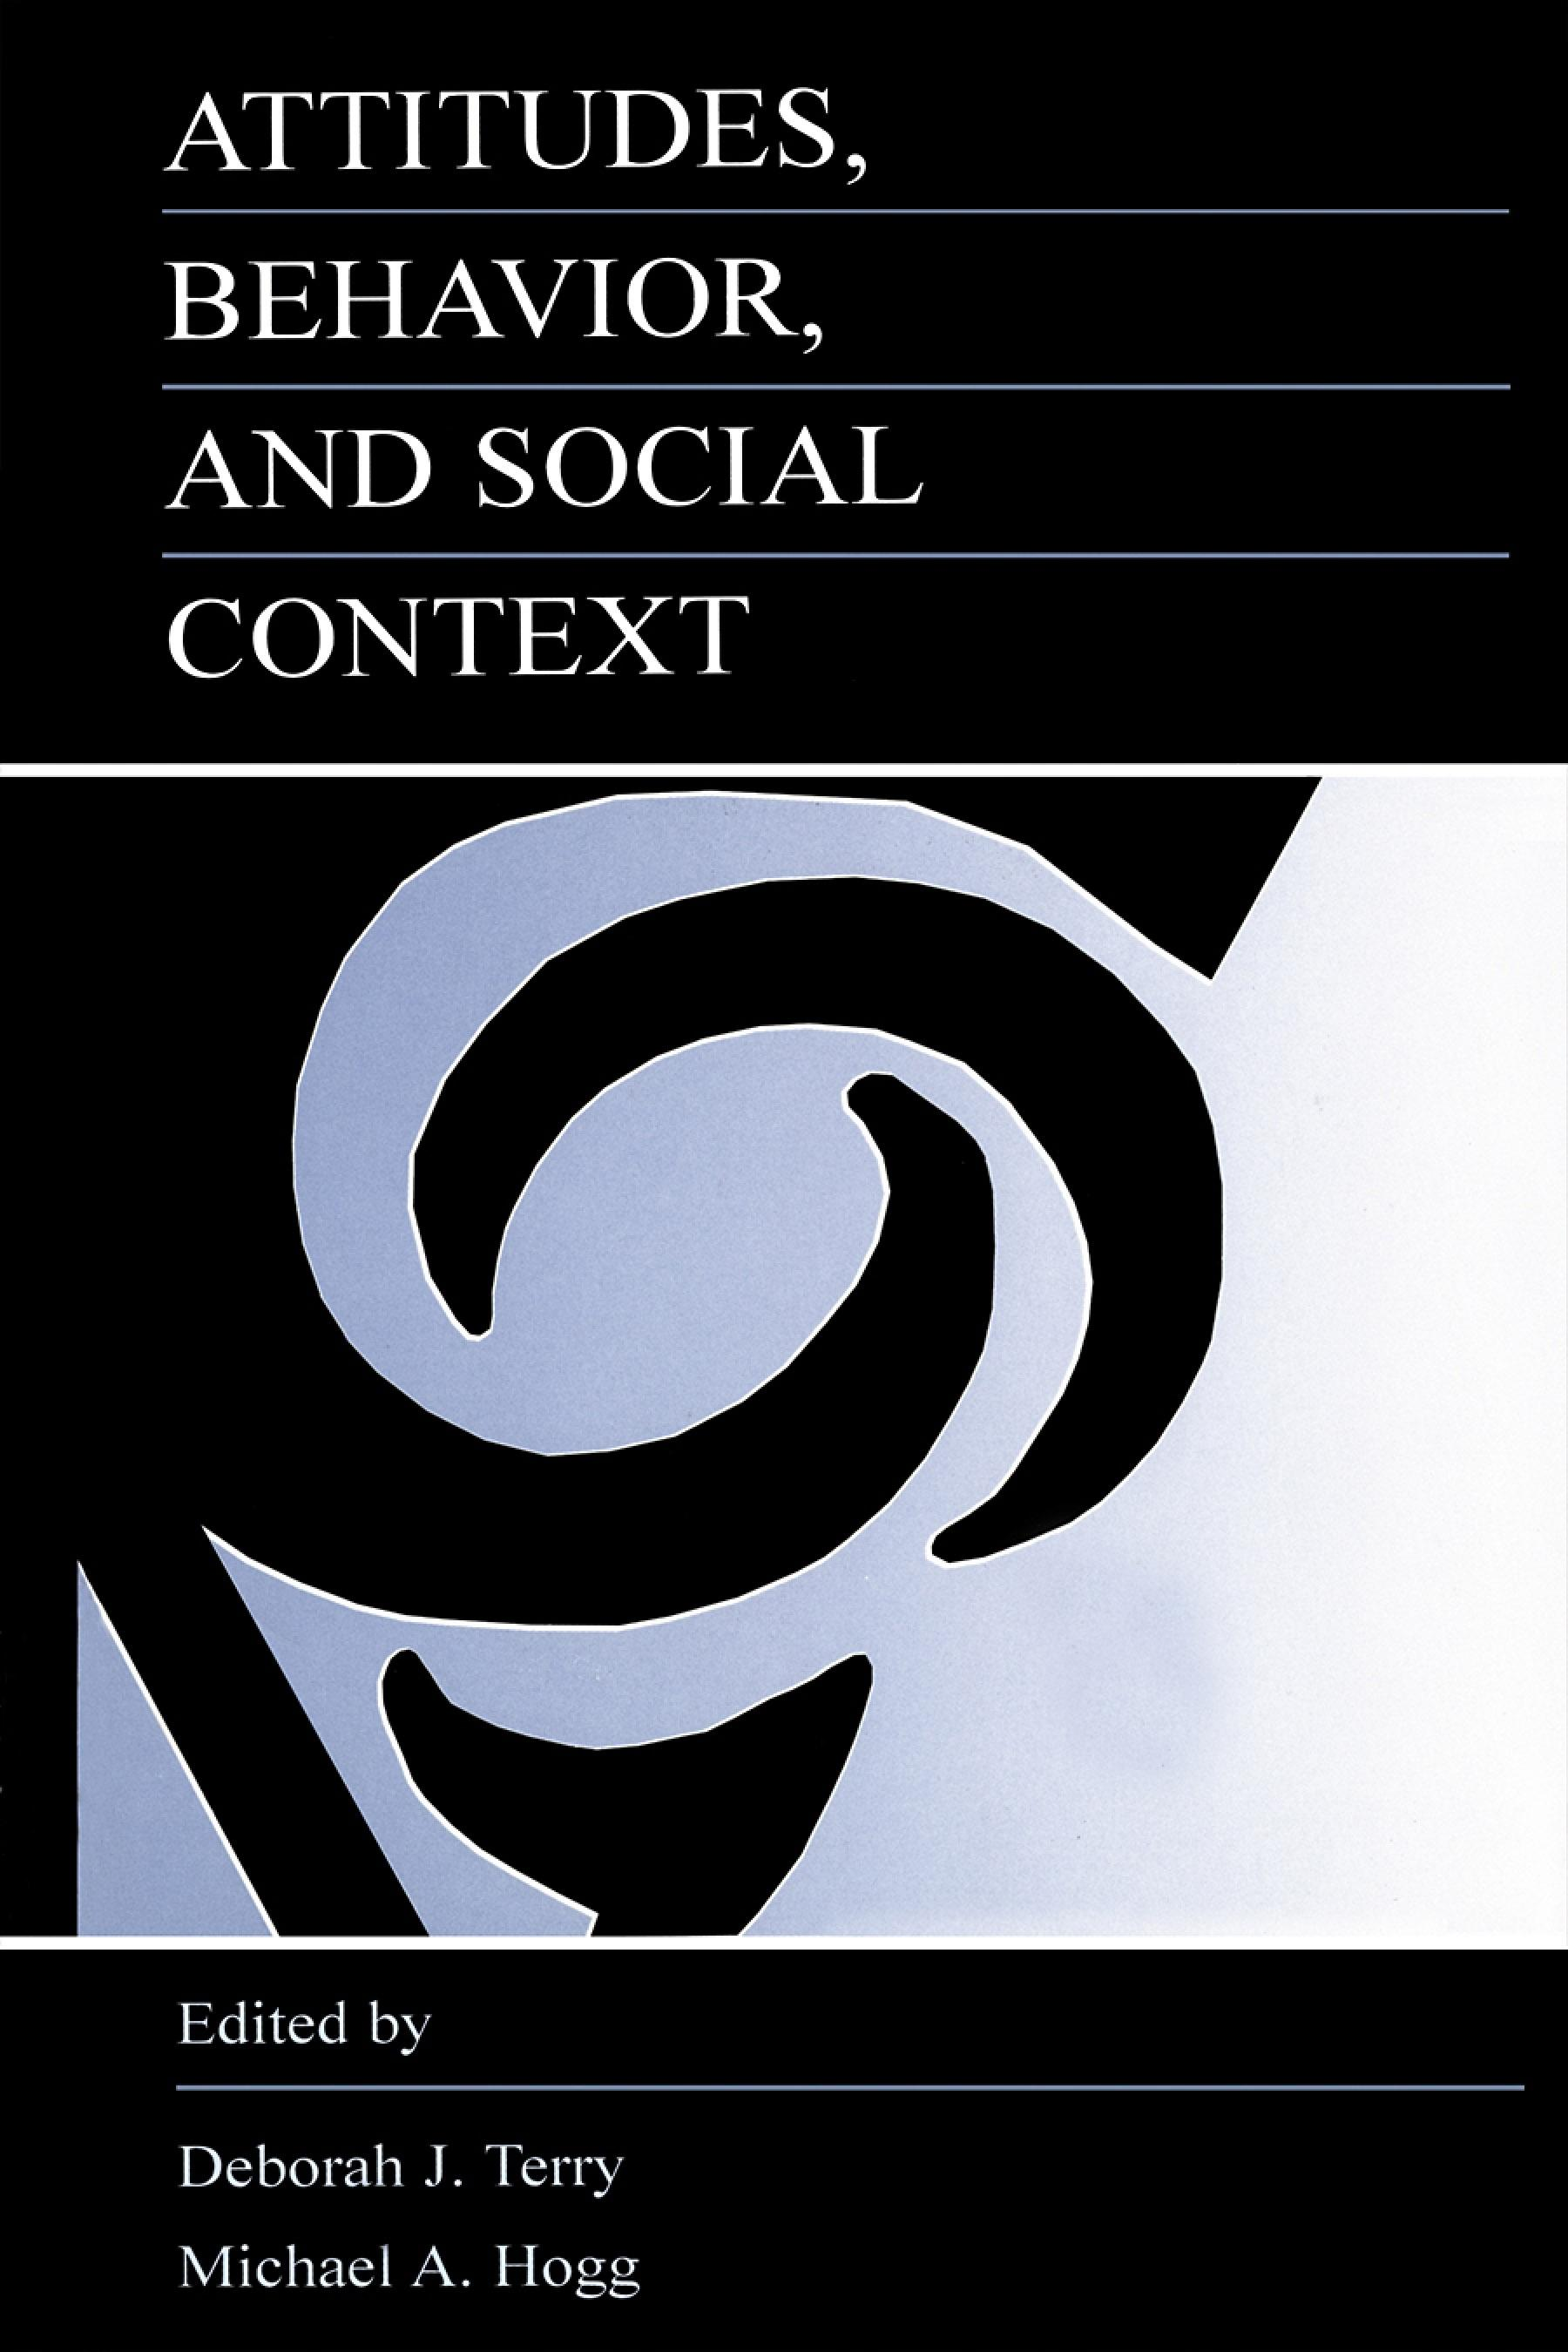 Attitudes, Behavior, and Social Context: The Role of Norms and Group Membership EB9781410603210